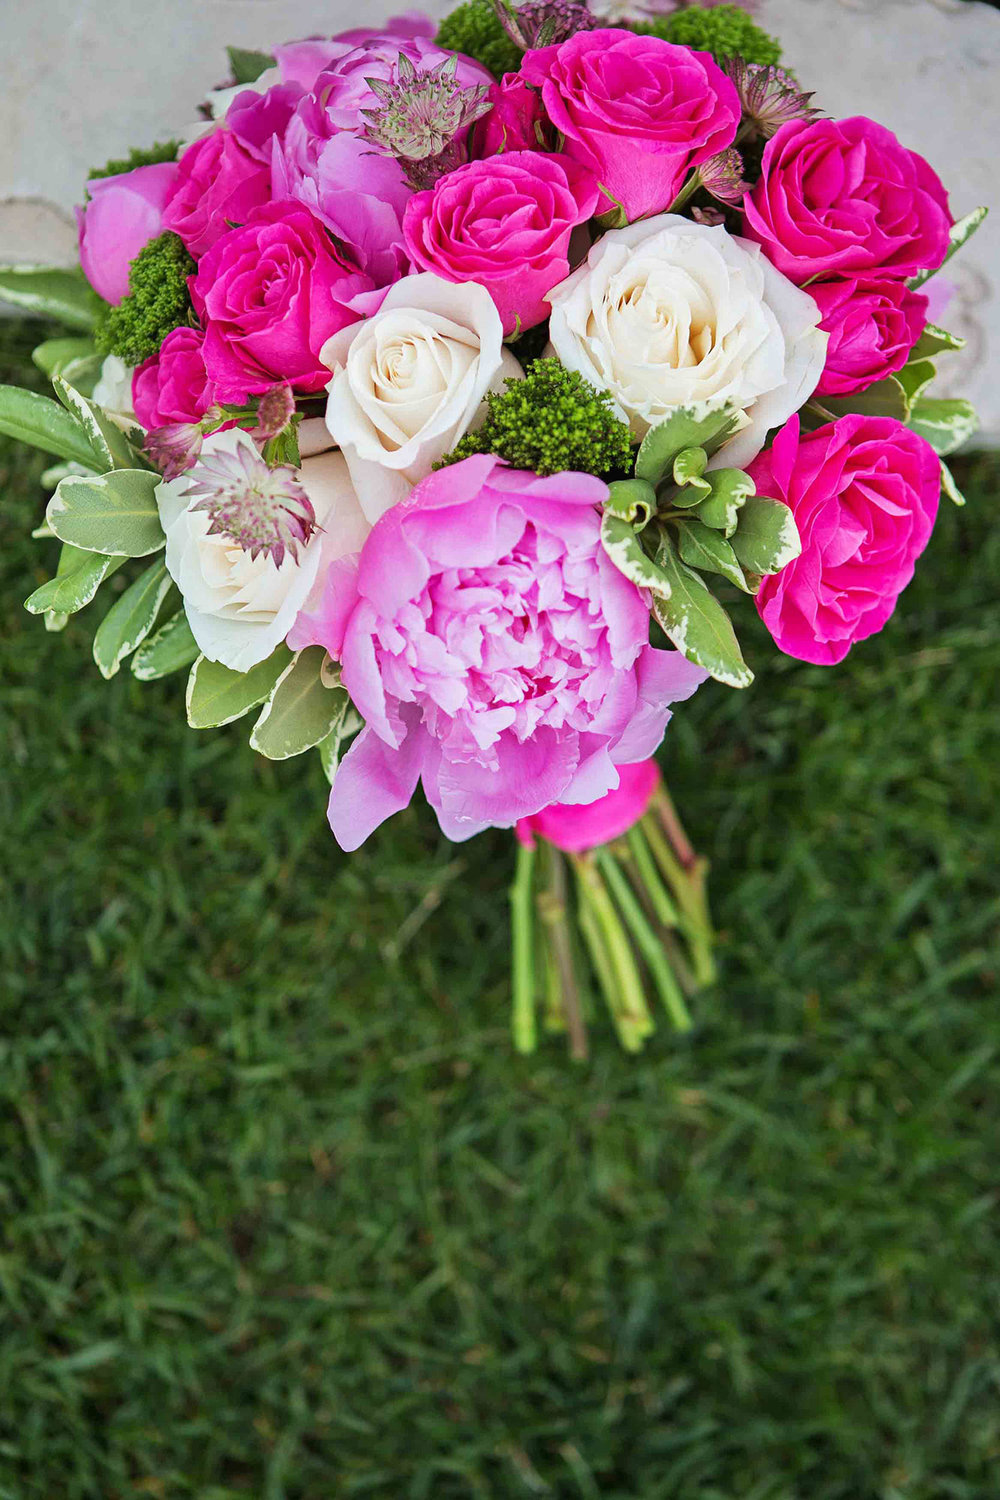 Wine-Country-Floral-Wedding-Florals-Vineyard-Bride-Photo-By-Jessica-Little-Photography-013.jpg